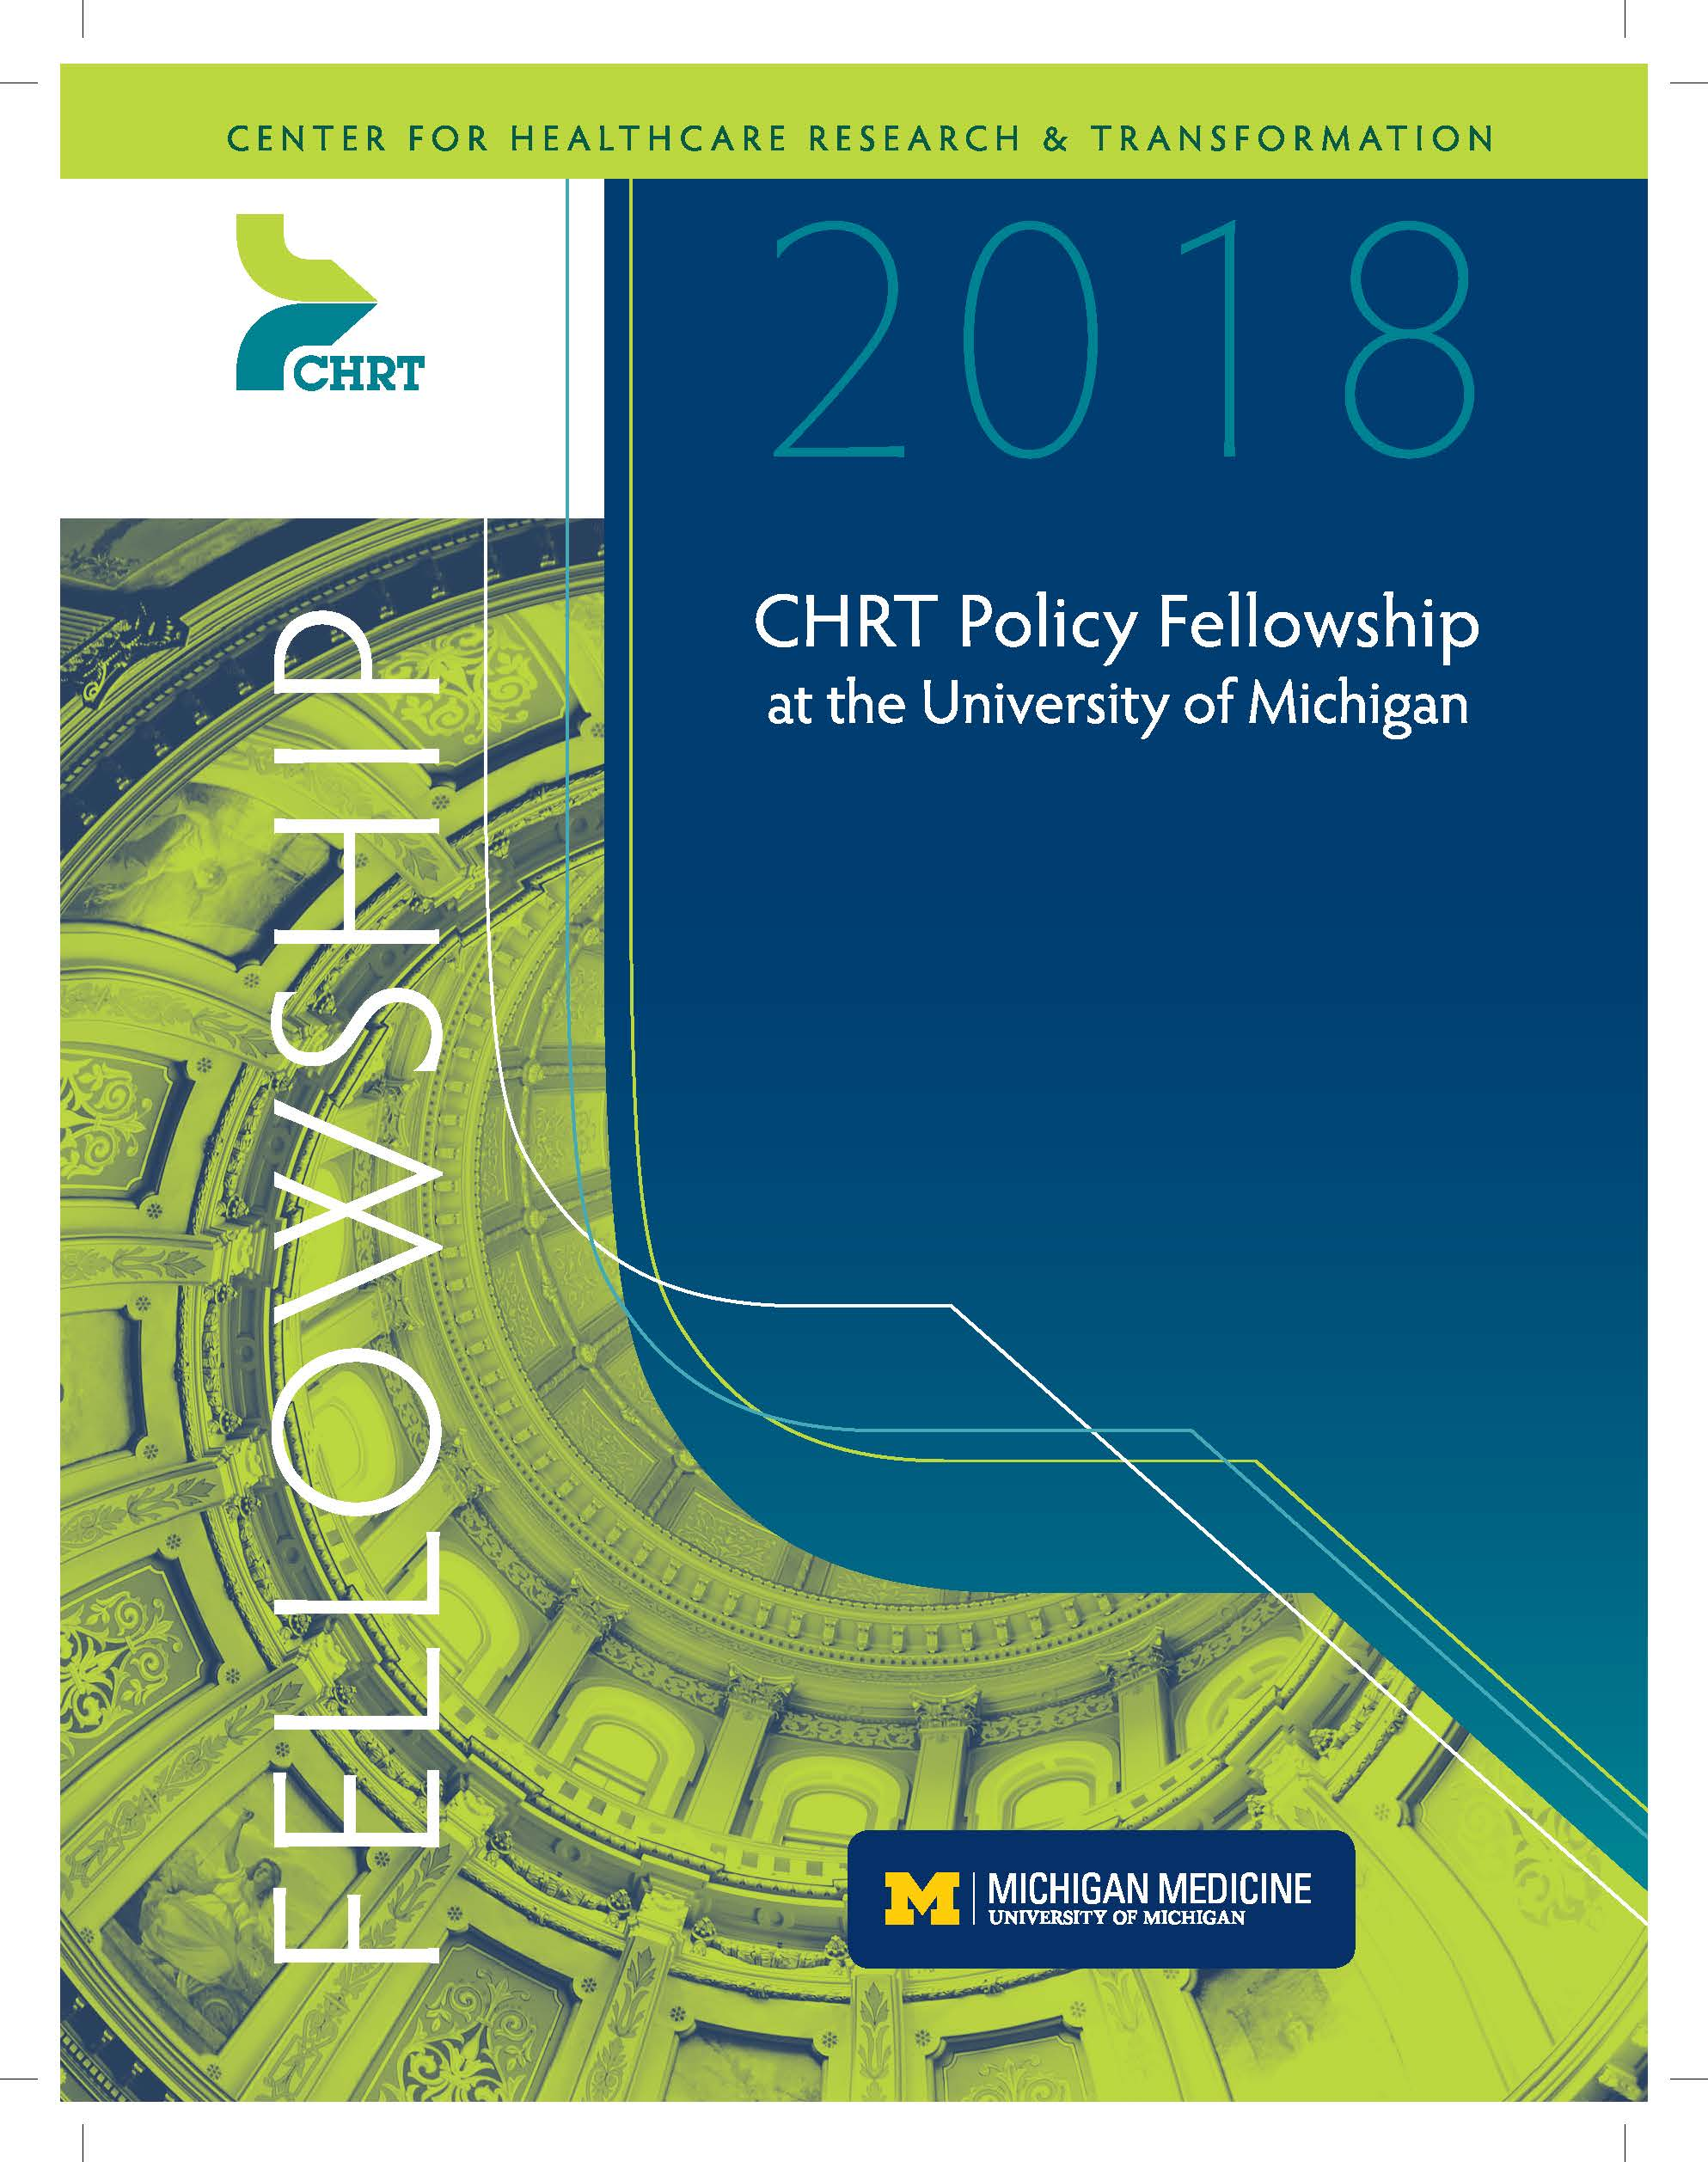 Download the 2018 CHRT Policy Fellowship brochure as a PDF